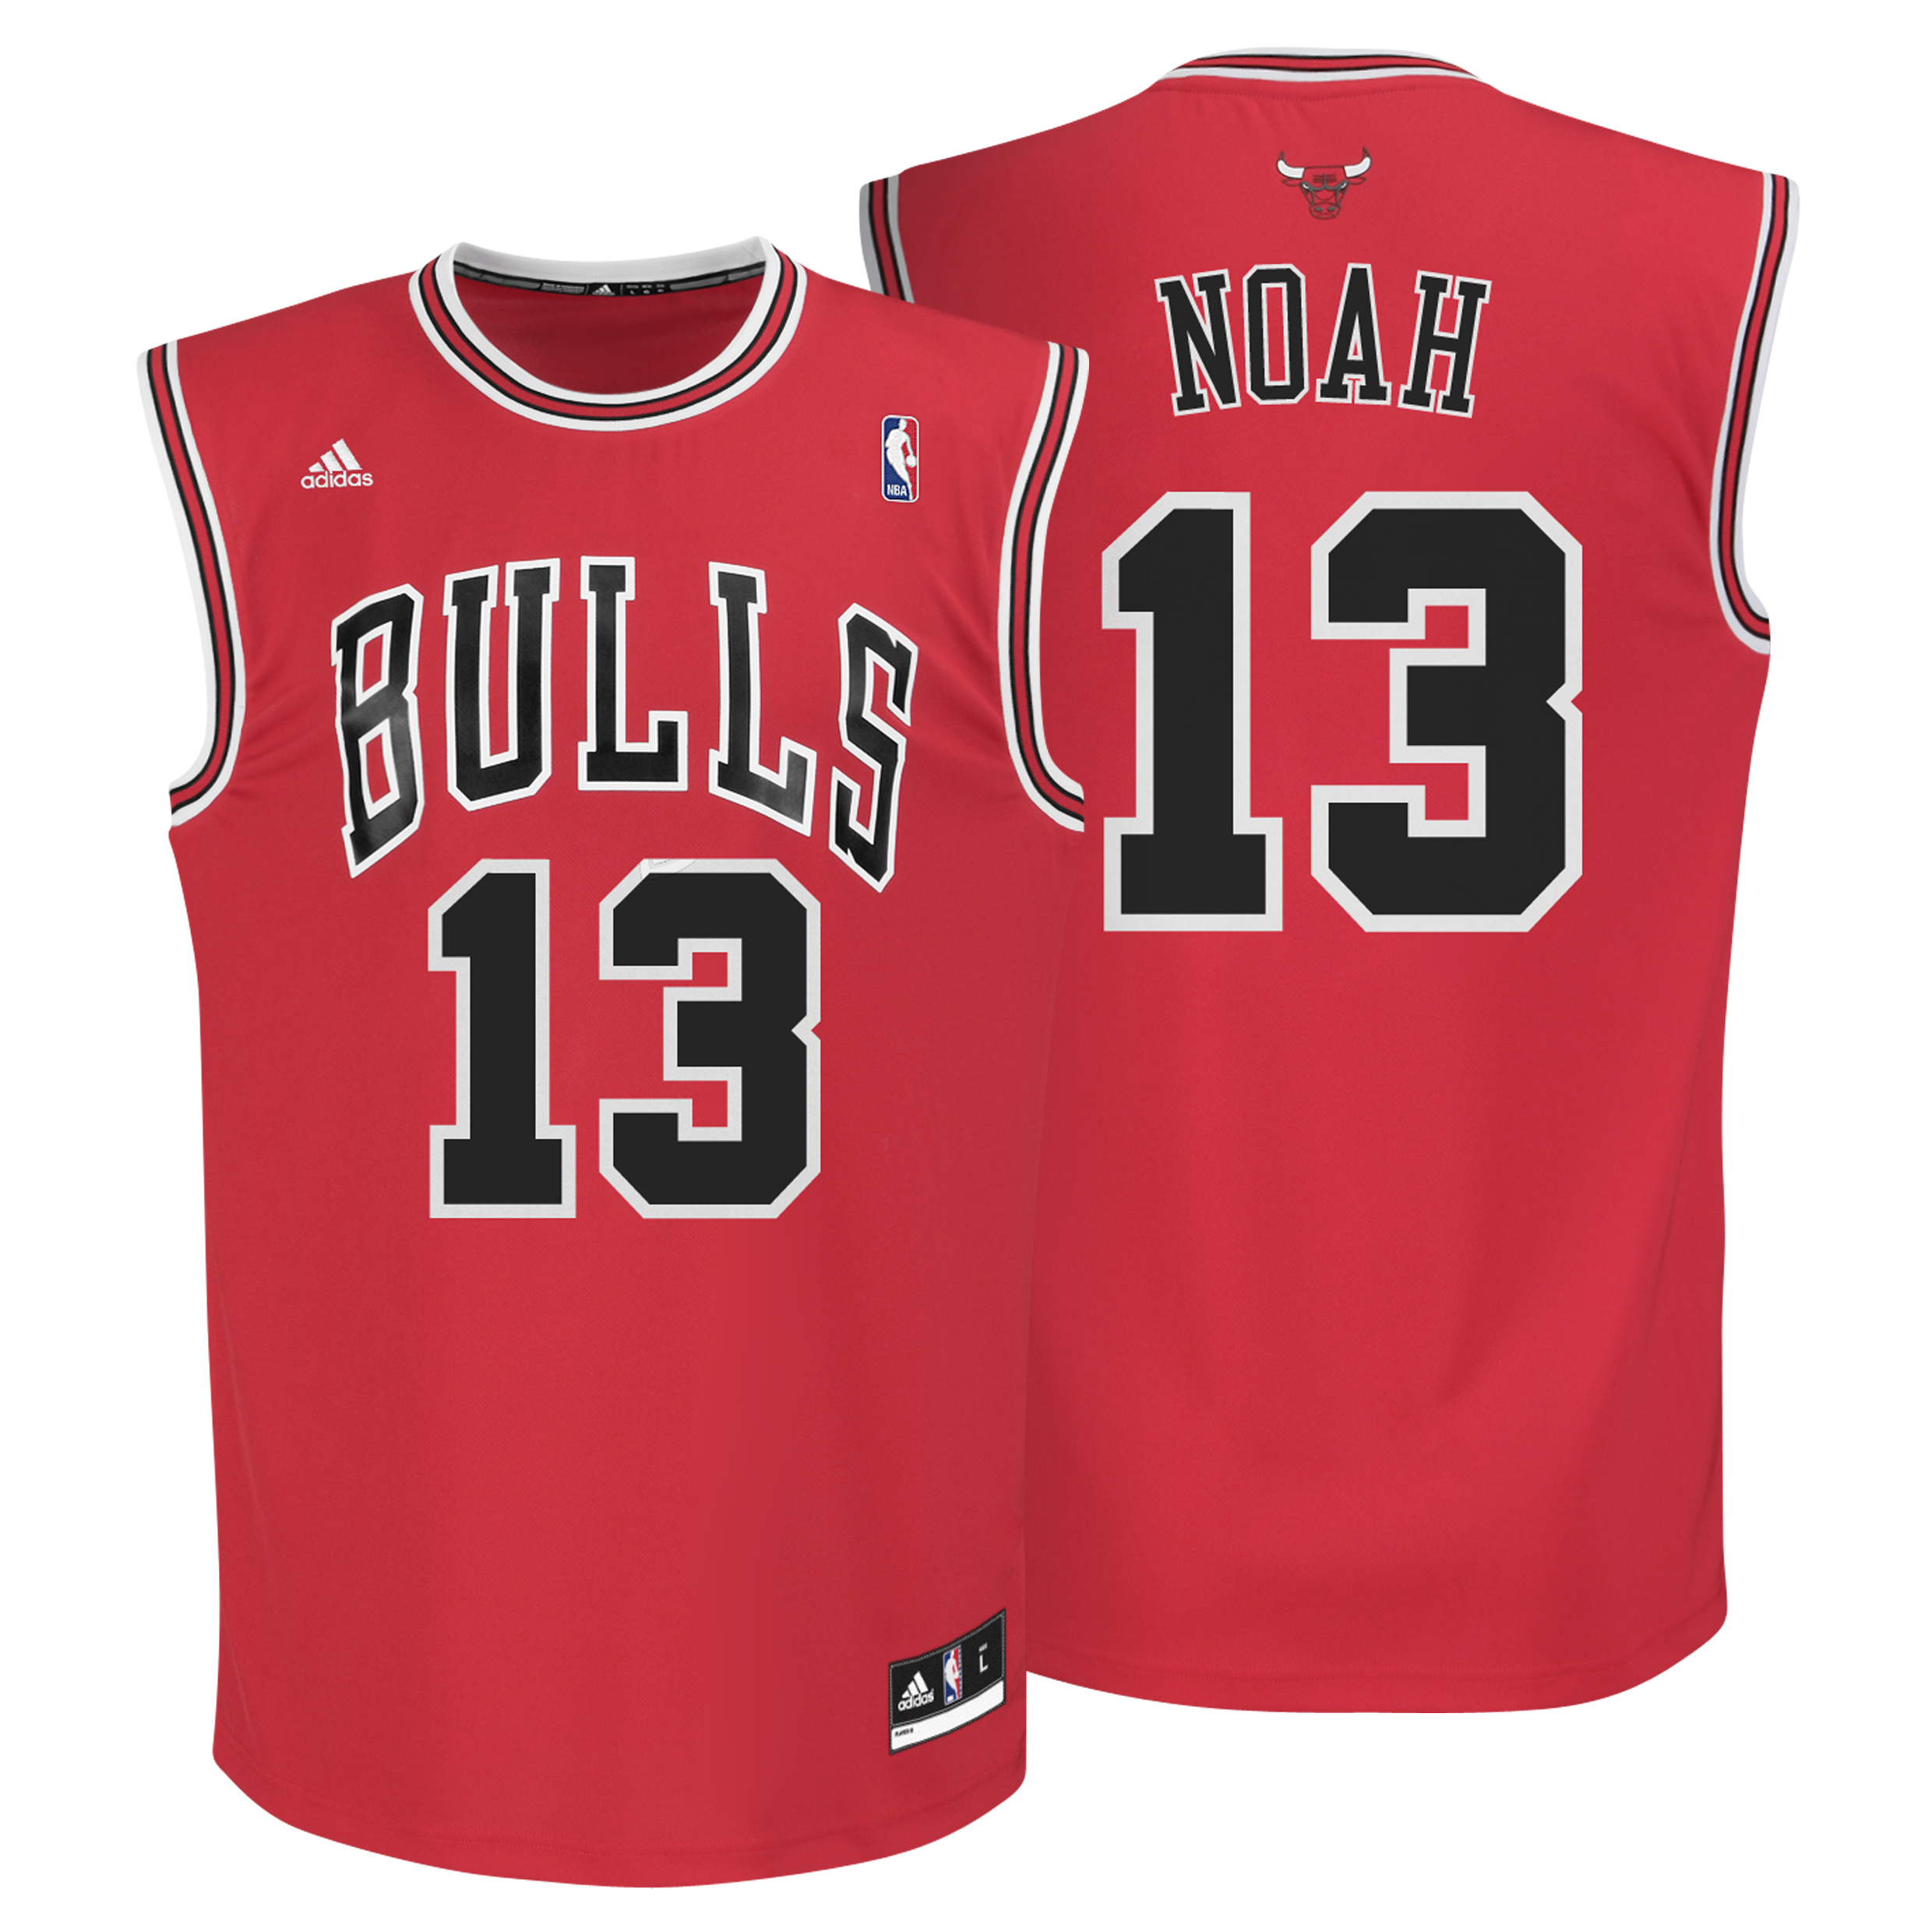 Chicago Bulls Road Replica Jersey - Joakim Noah - Mens